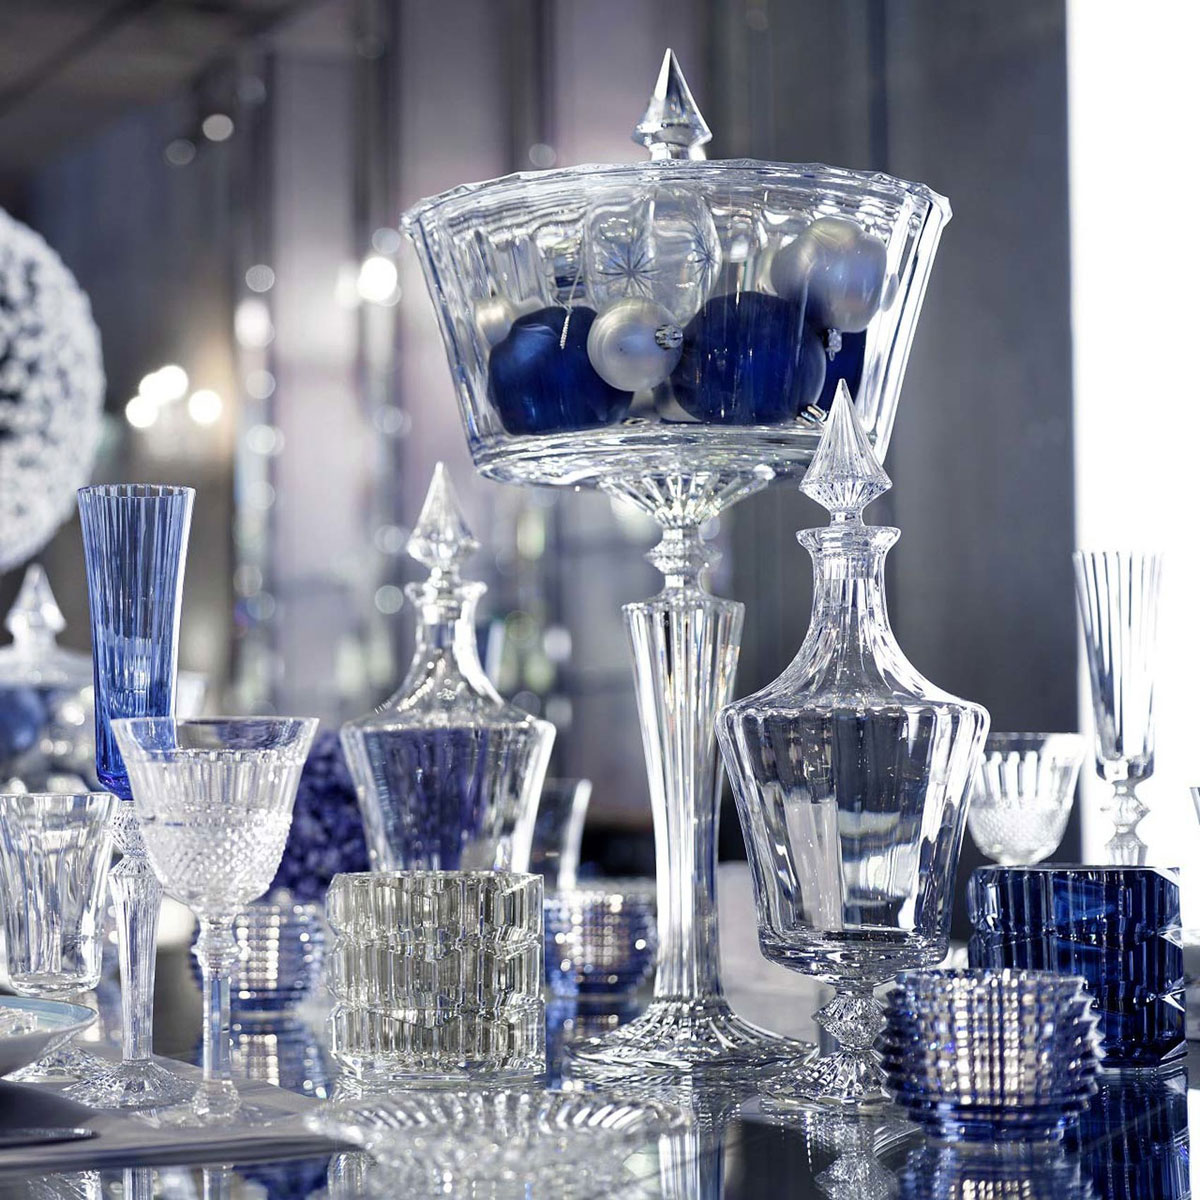 Baccarat Crystal Mille Nuits Decanter